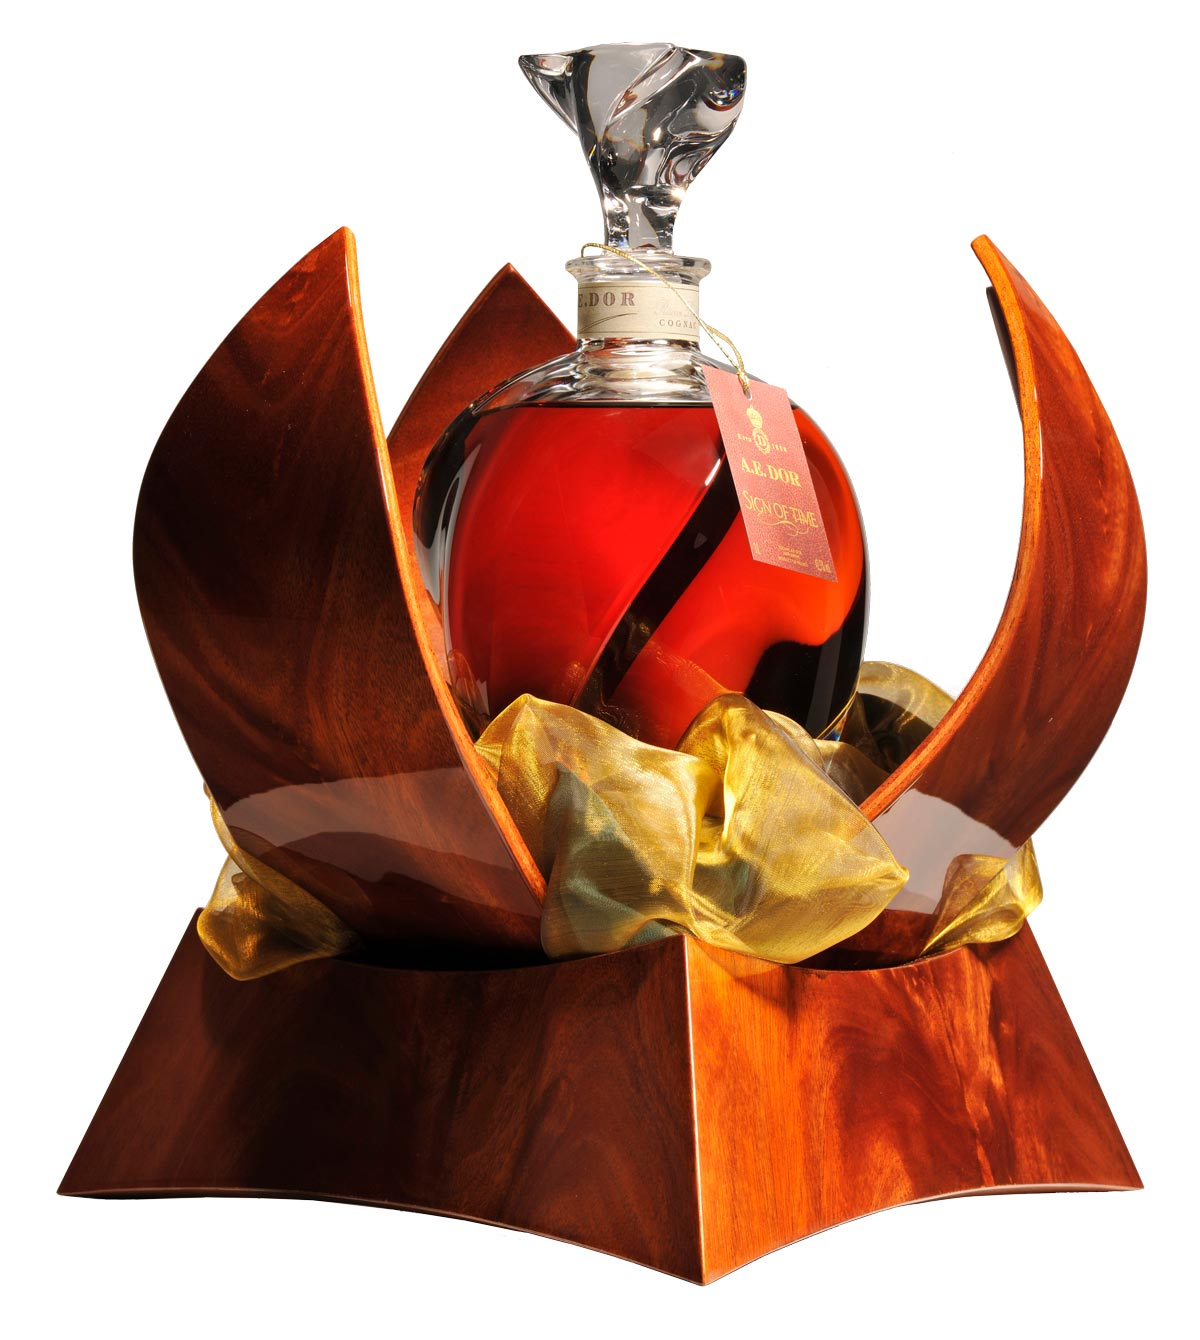 A.E. Dor Cognac: A historic house built on passion and quality